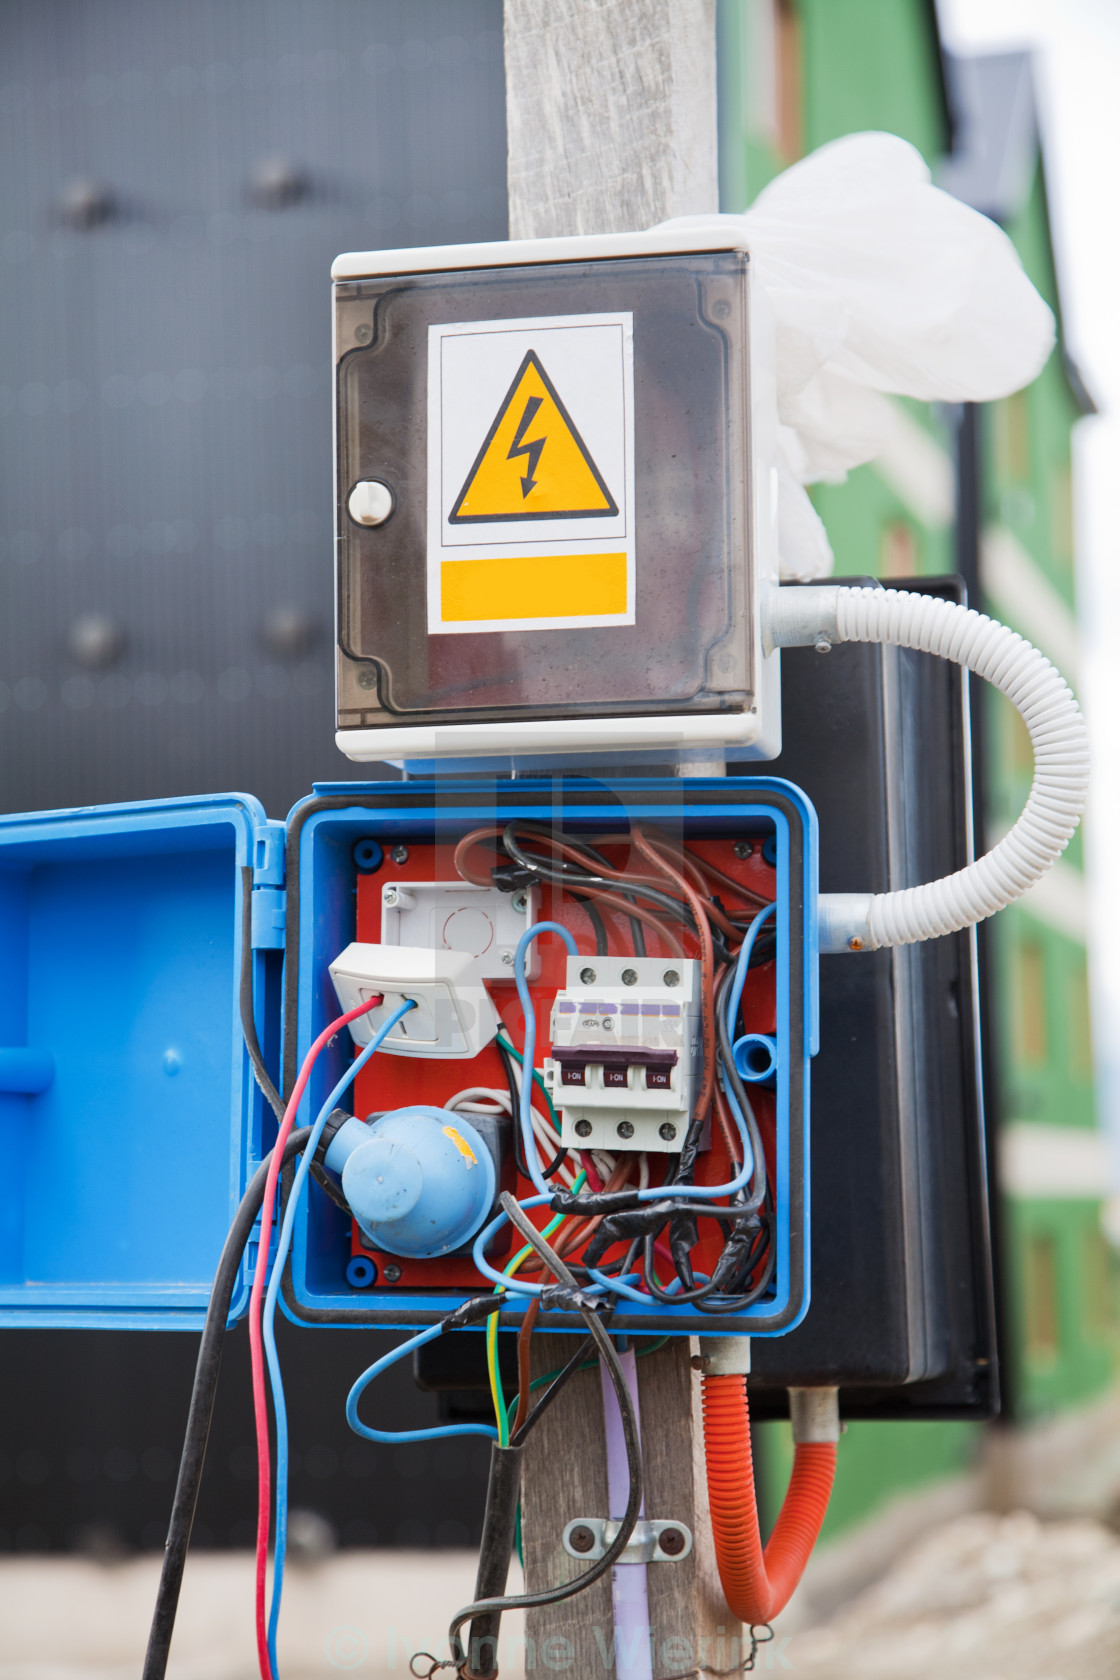 Dangerous Electricity License For 372 On Picfair Electrical Wiring Stock Image